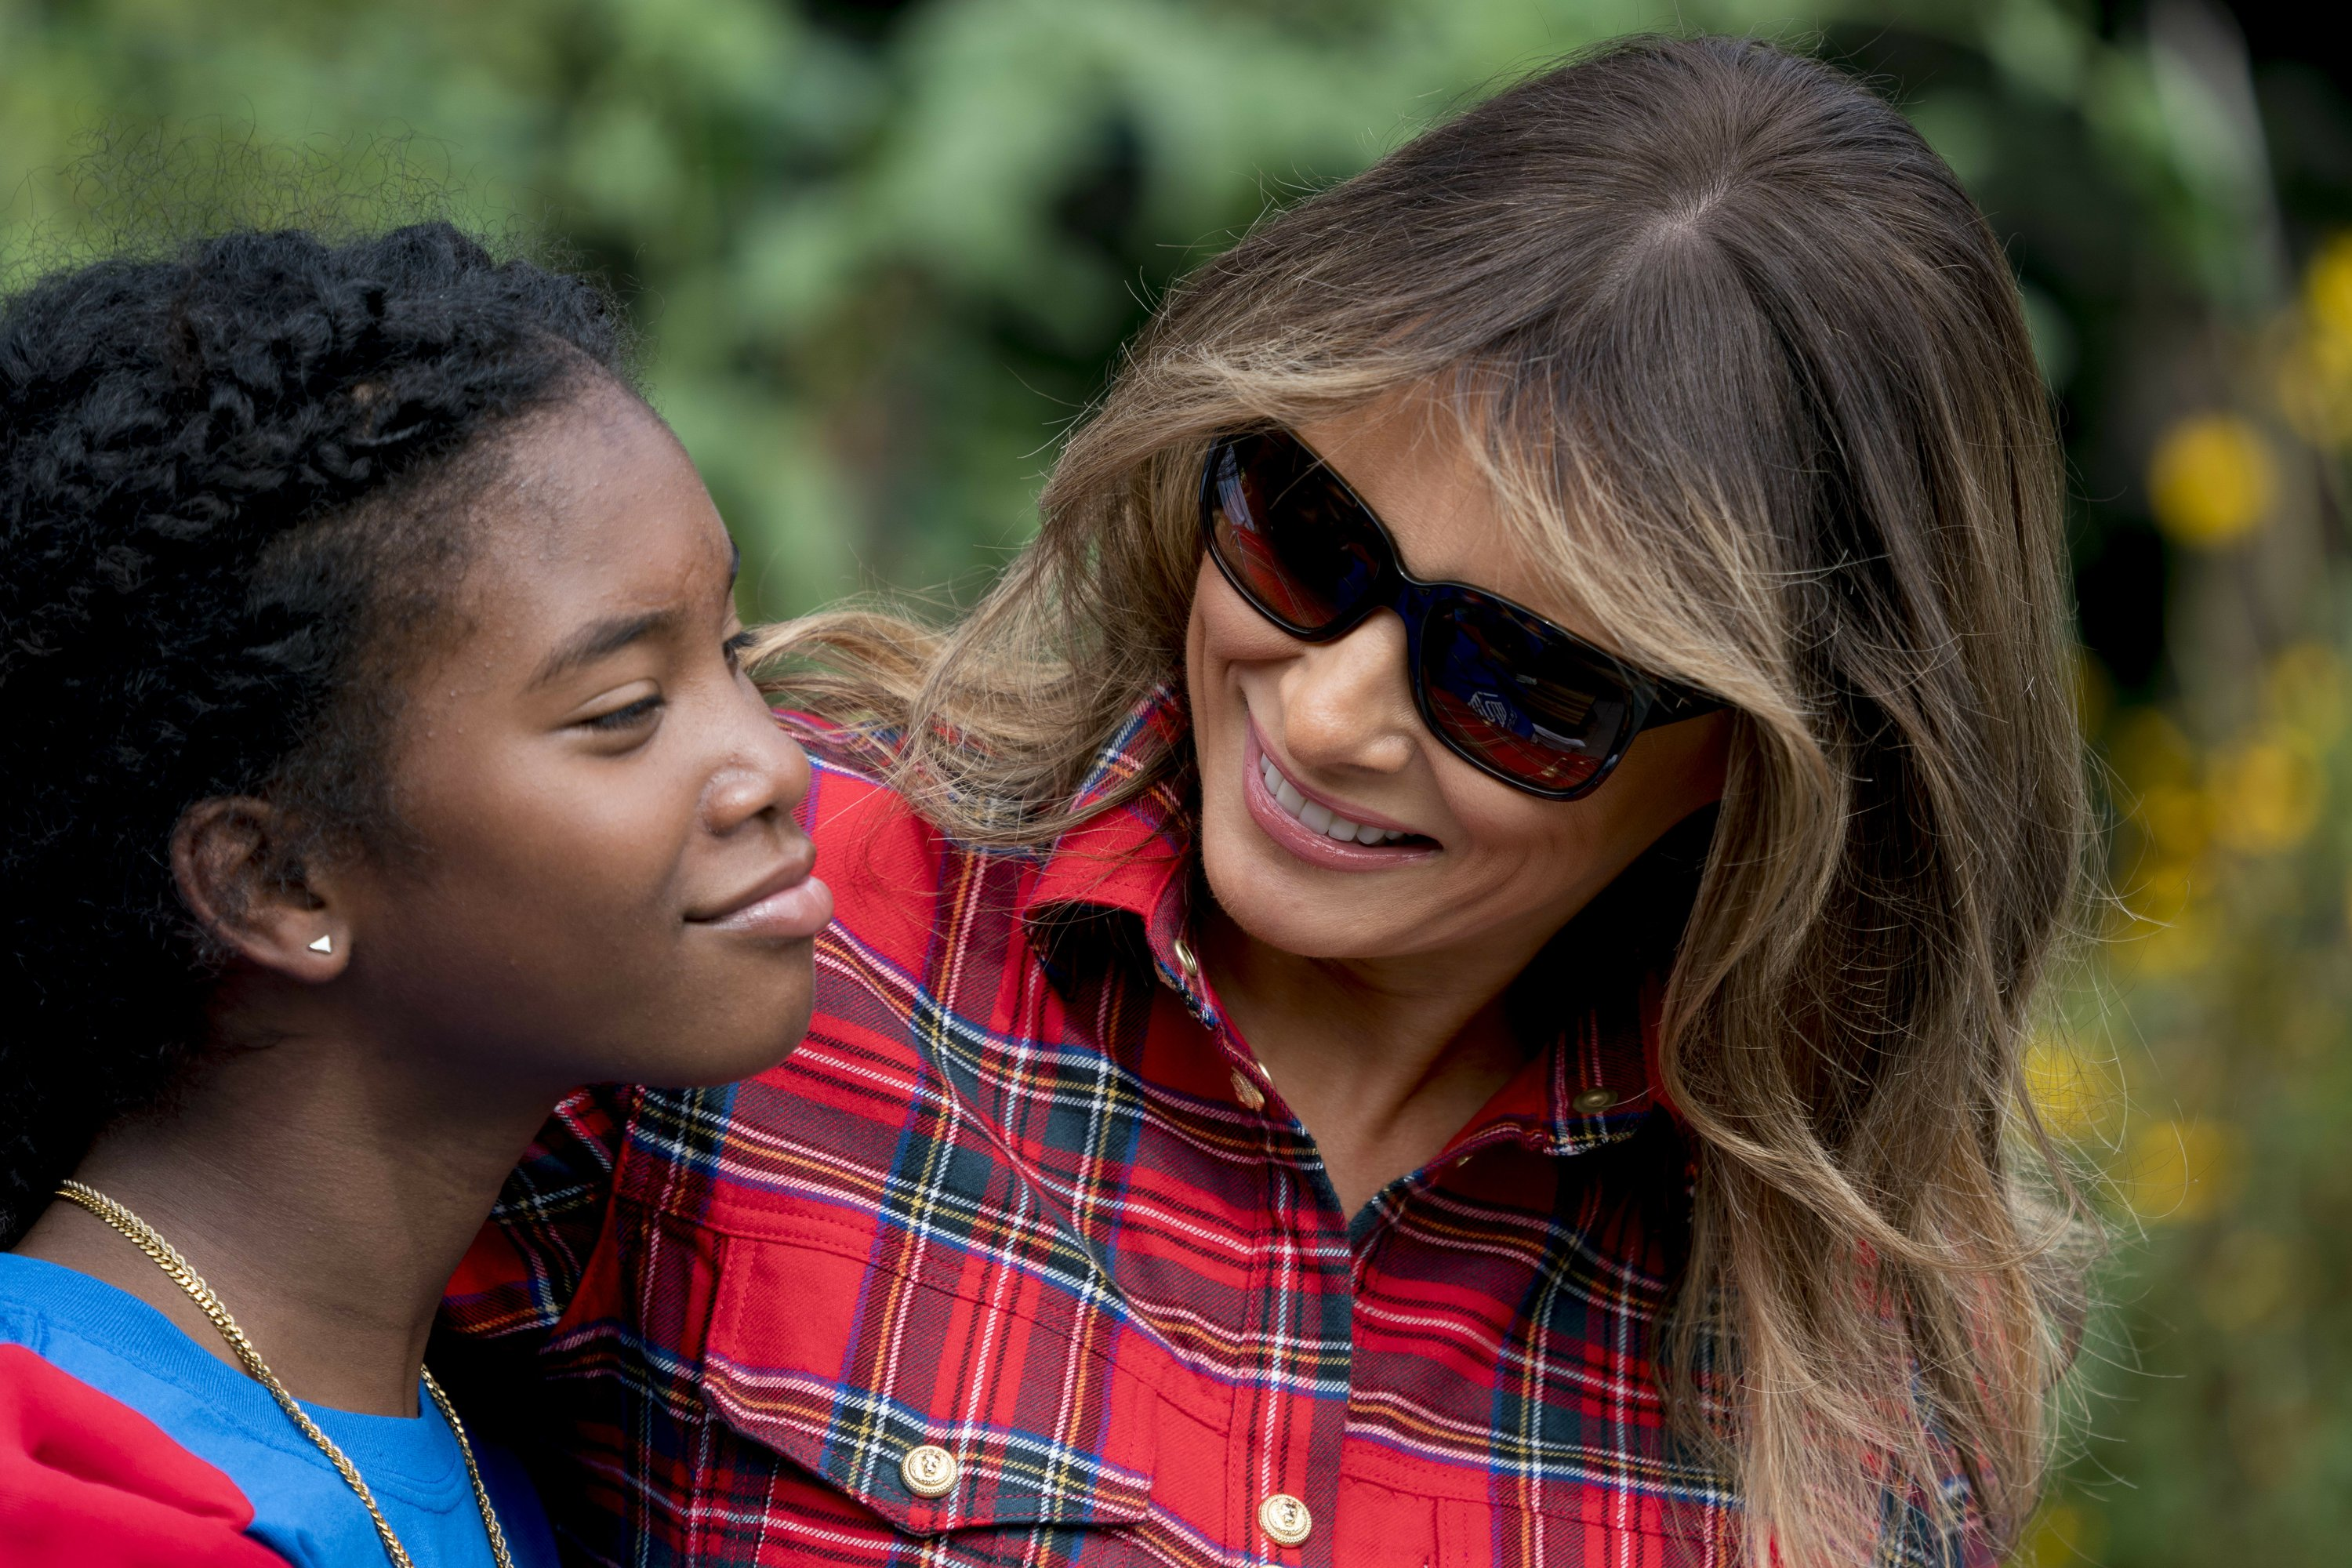 First lady set to embark on first solo trip outside US